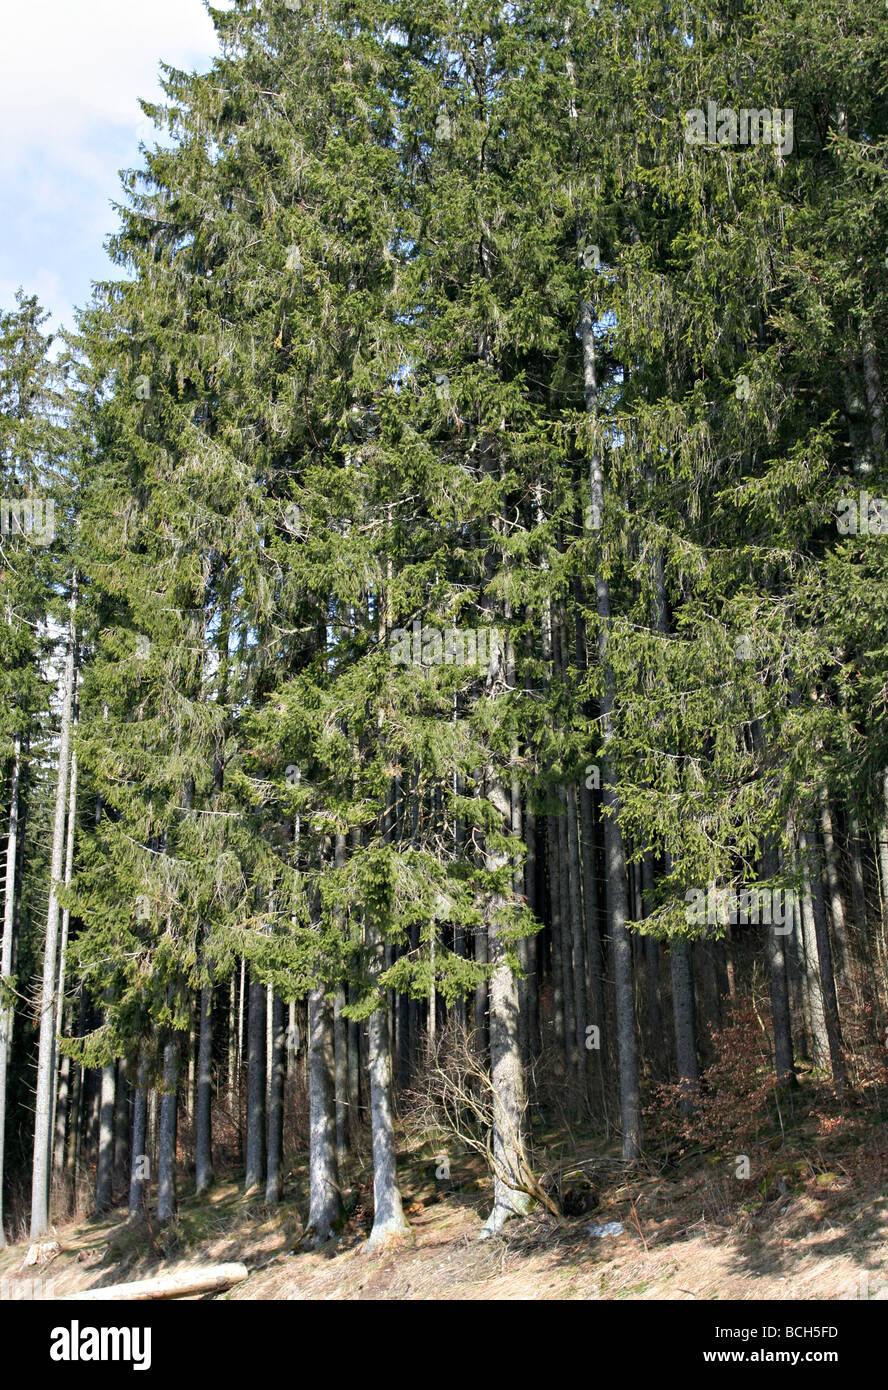 Pine trees at Black Forest - Titisee, Germany - Stock Image